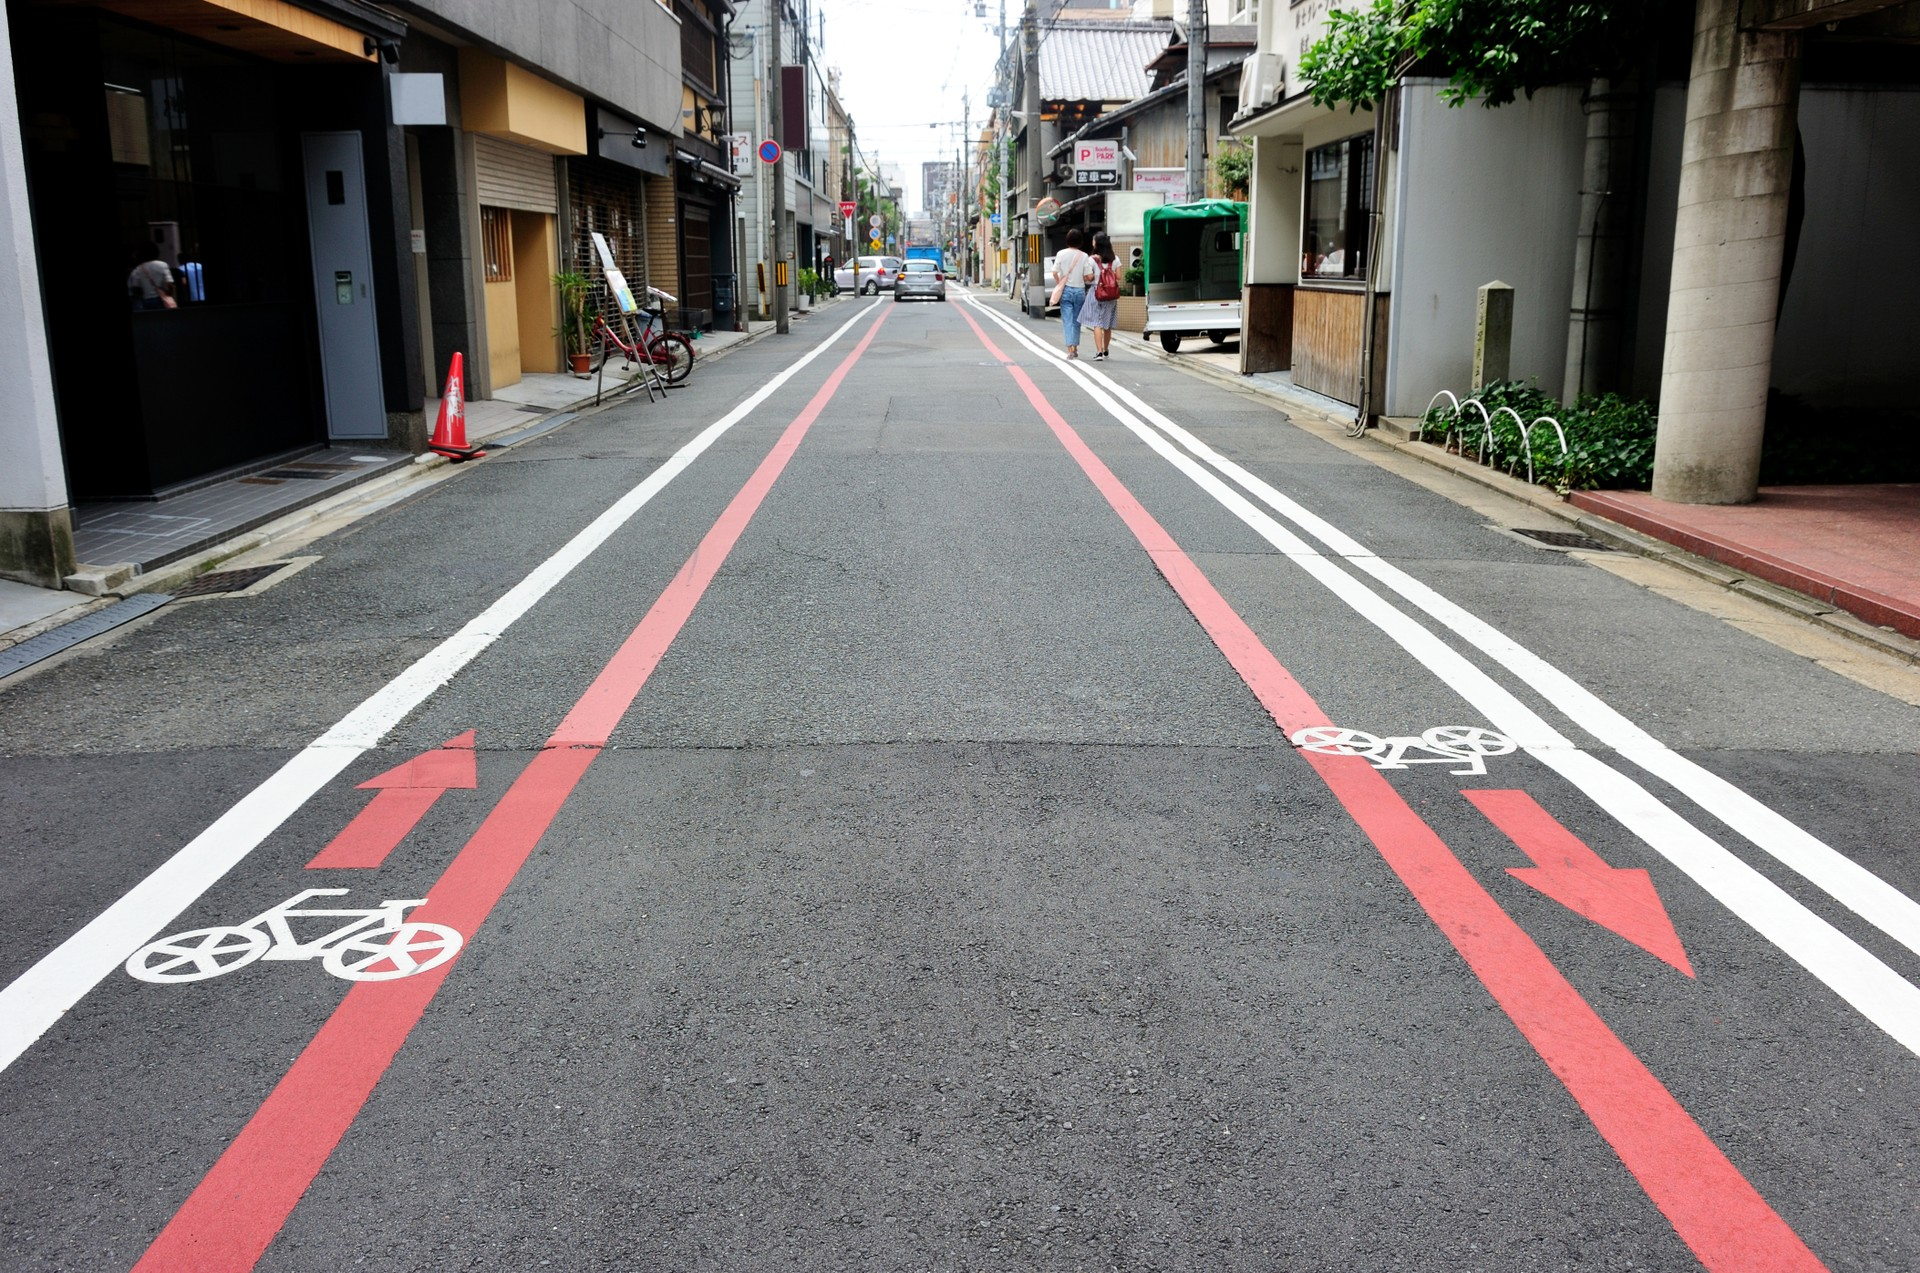 Cycle lanes in Kyoto, Japan